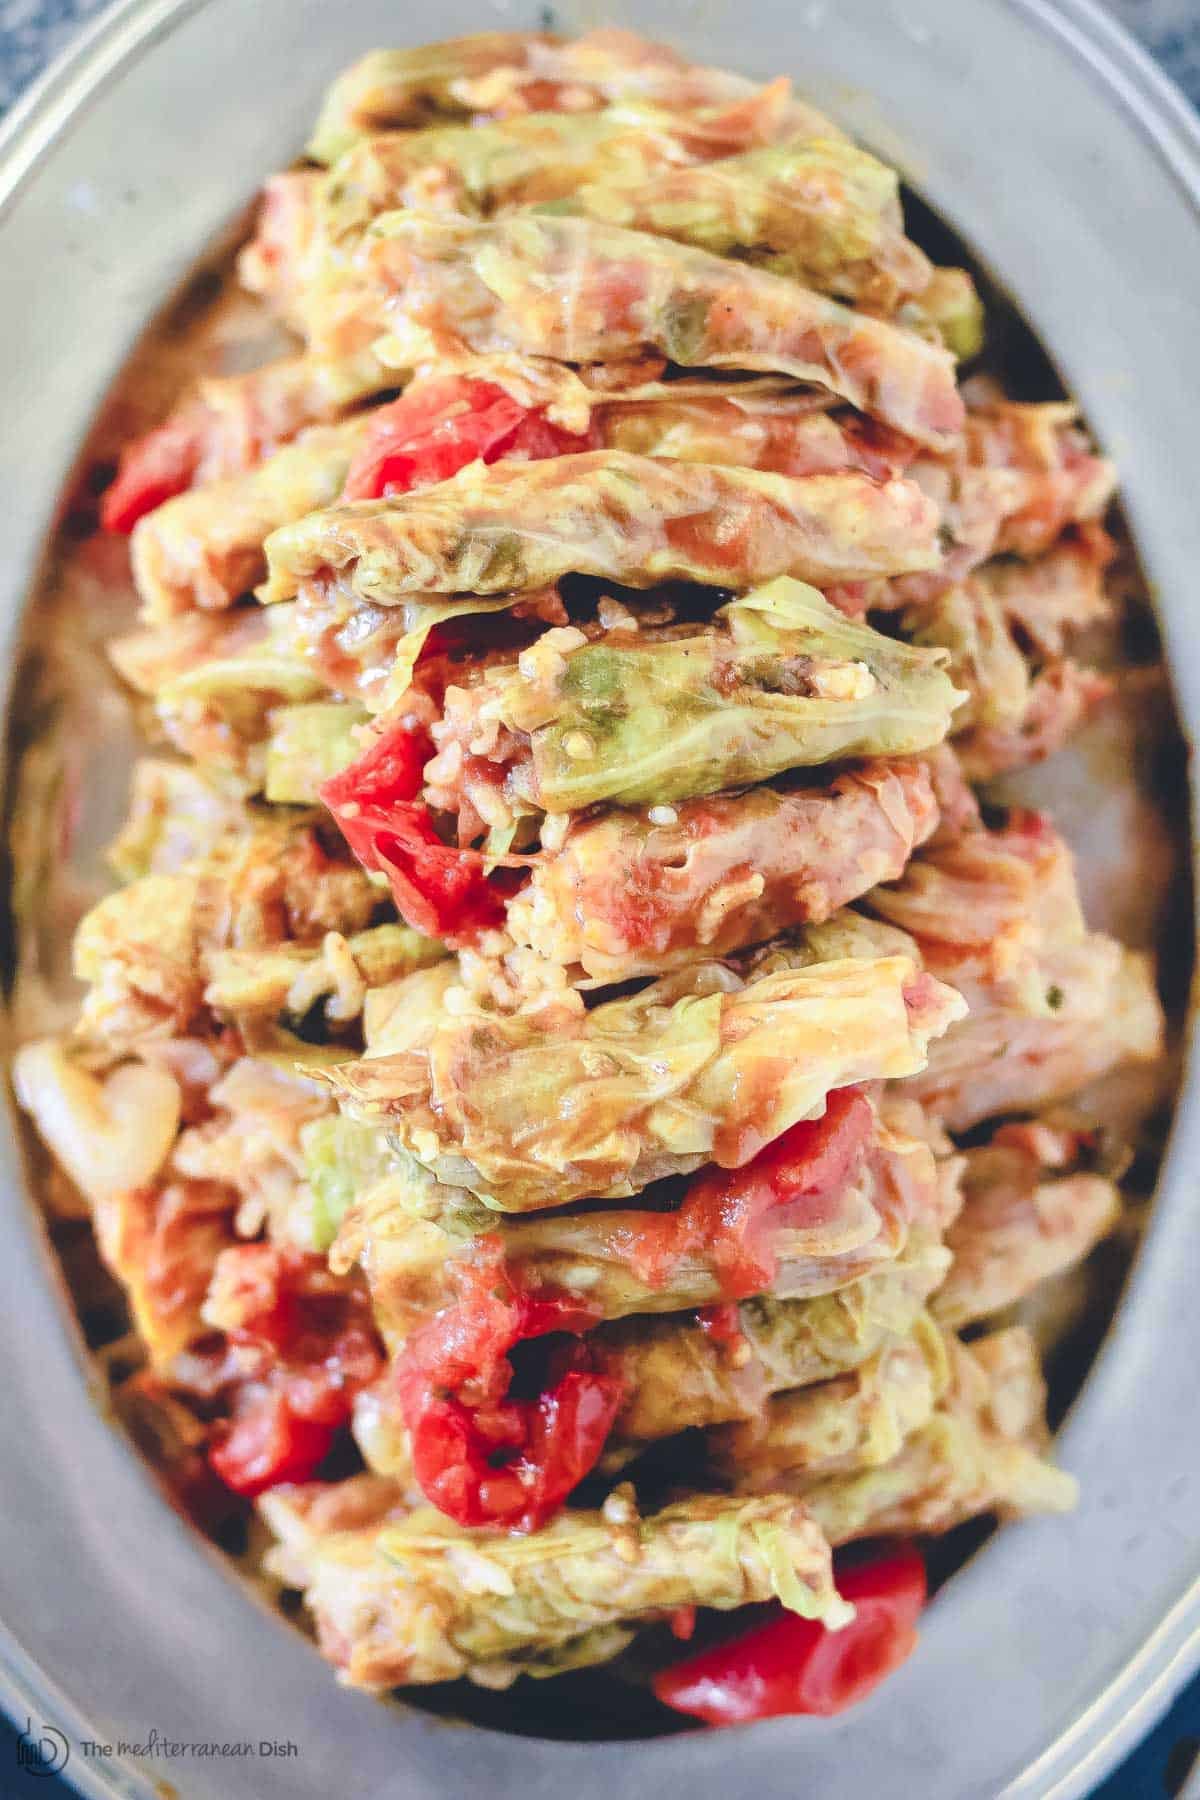 Vegetarian stuffed cabbage rolls piled on a plate